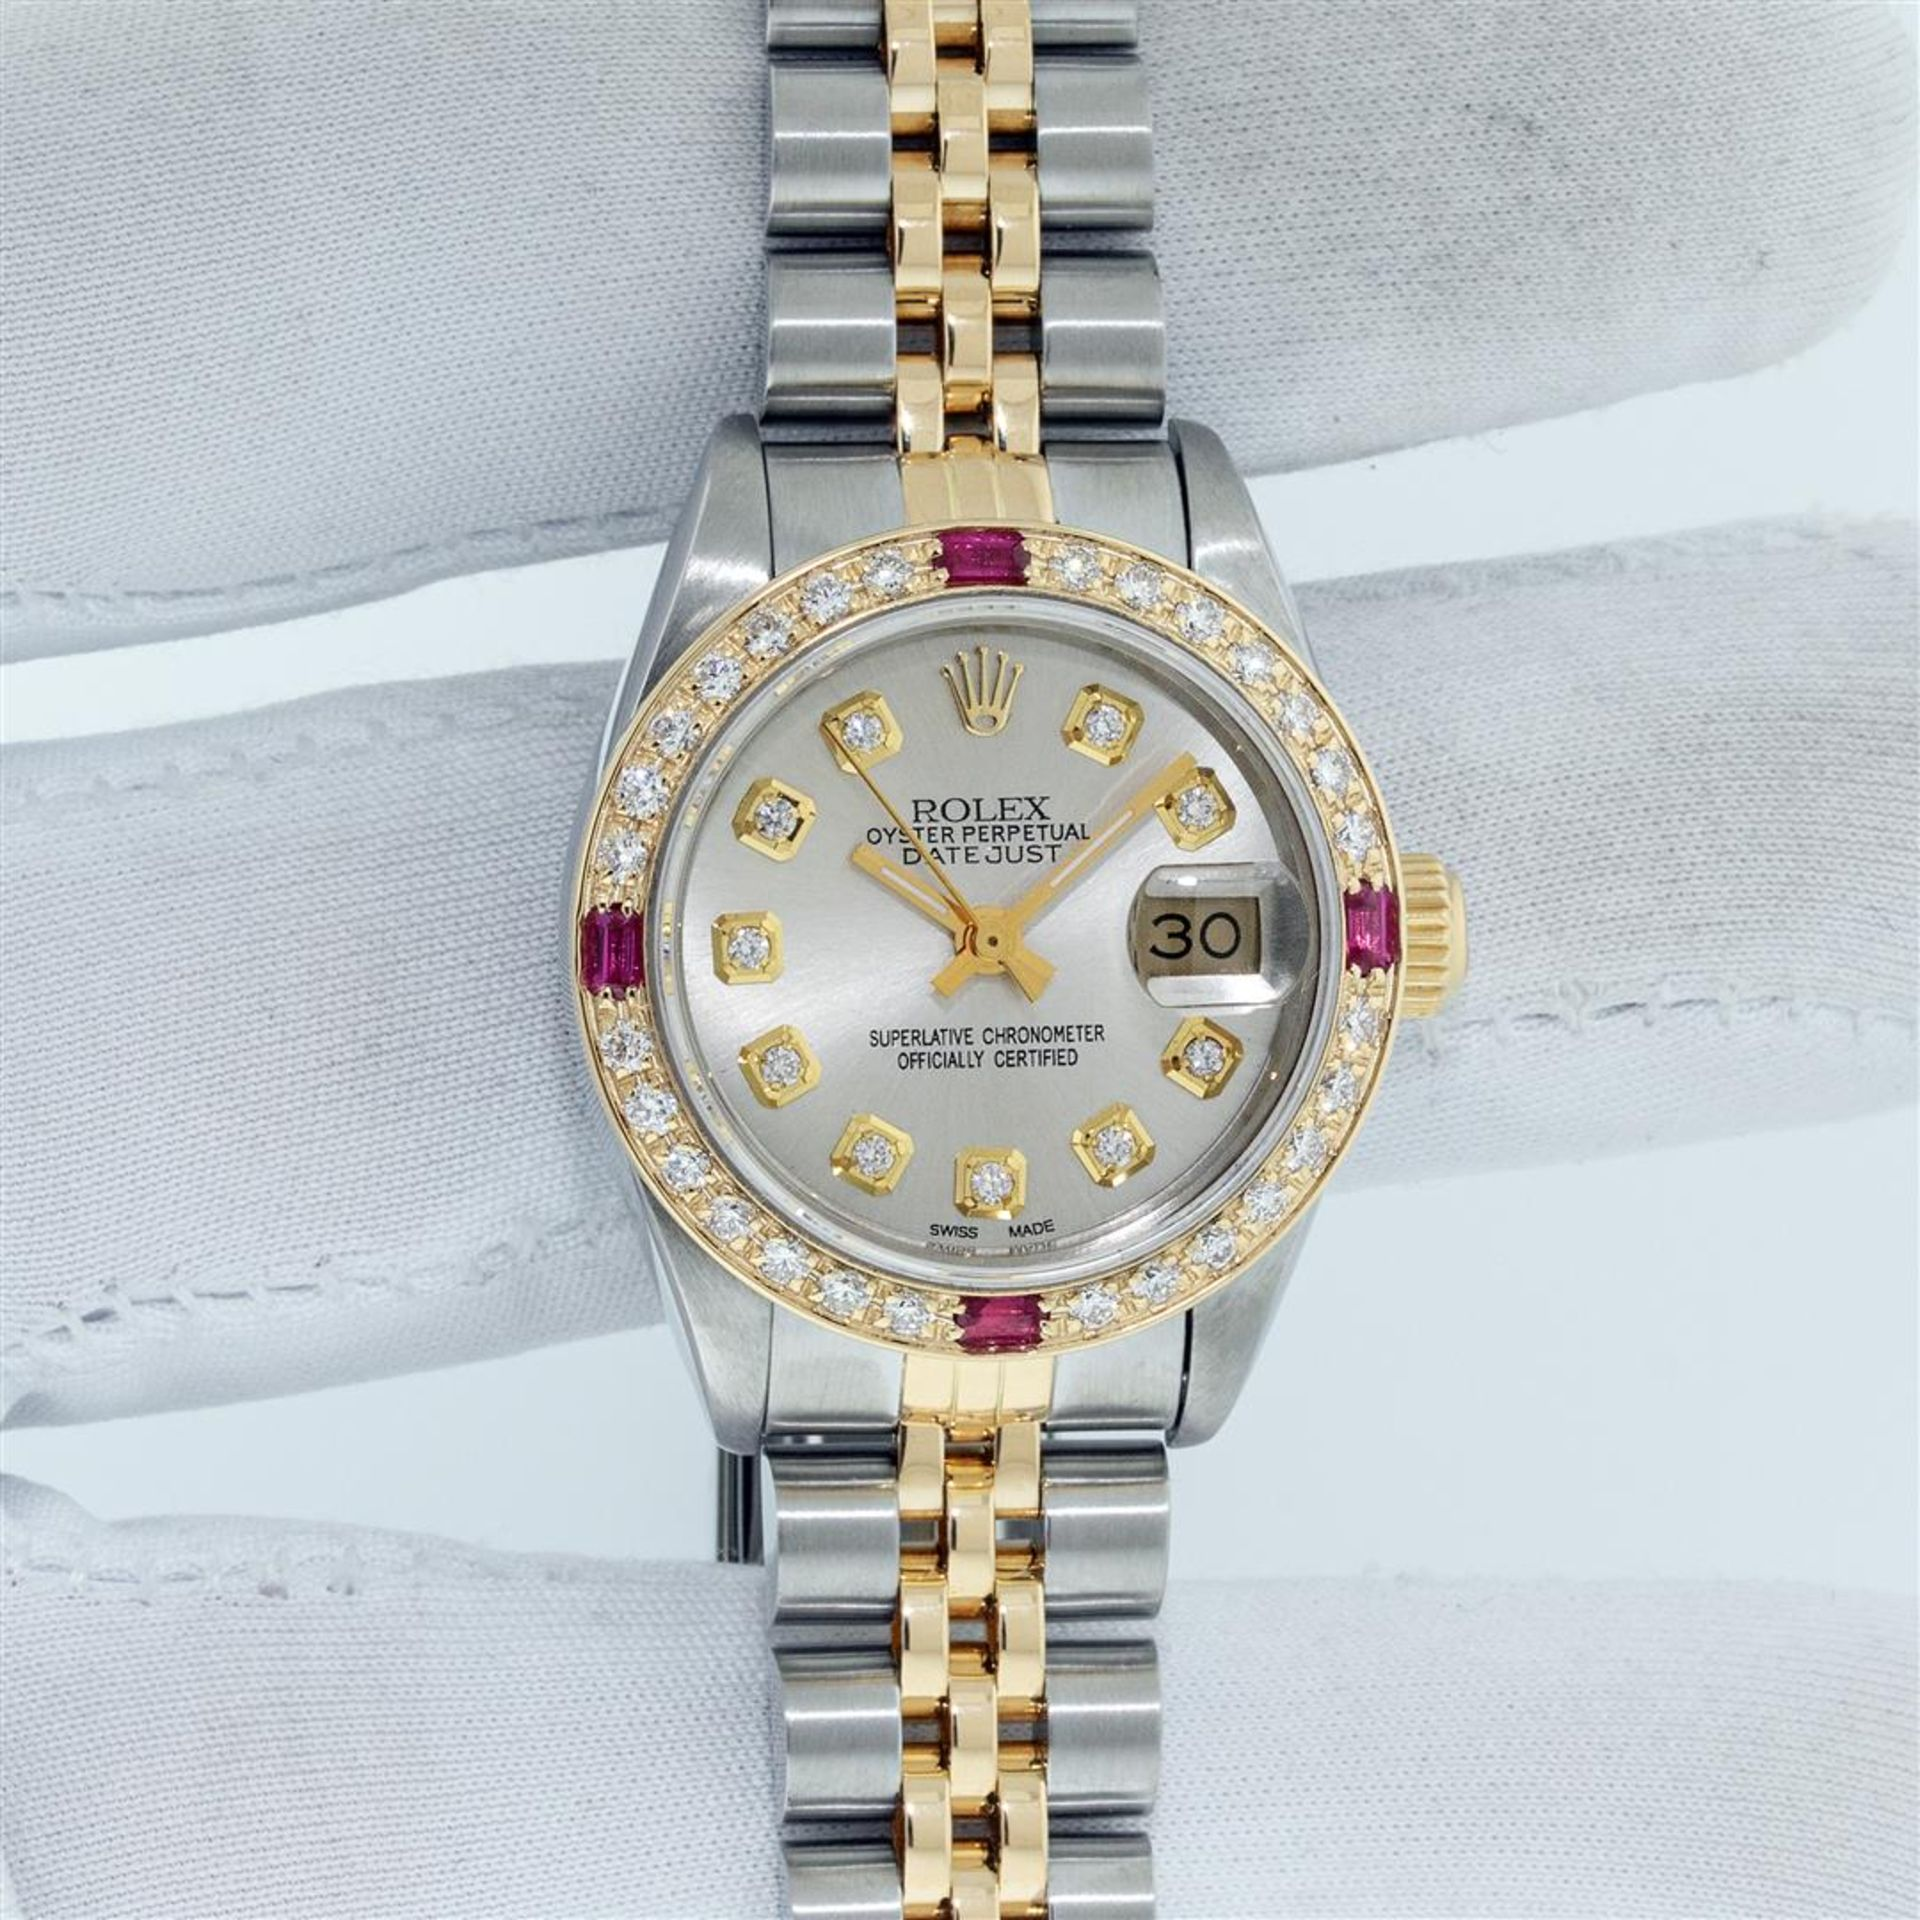 Rolex Ladies 2 Tone Silver Diamond & Ruby Oyster Perpetual Datejust Wristwatch - Image 3 of 9